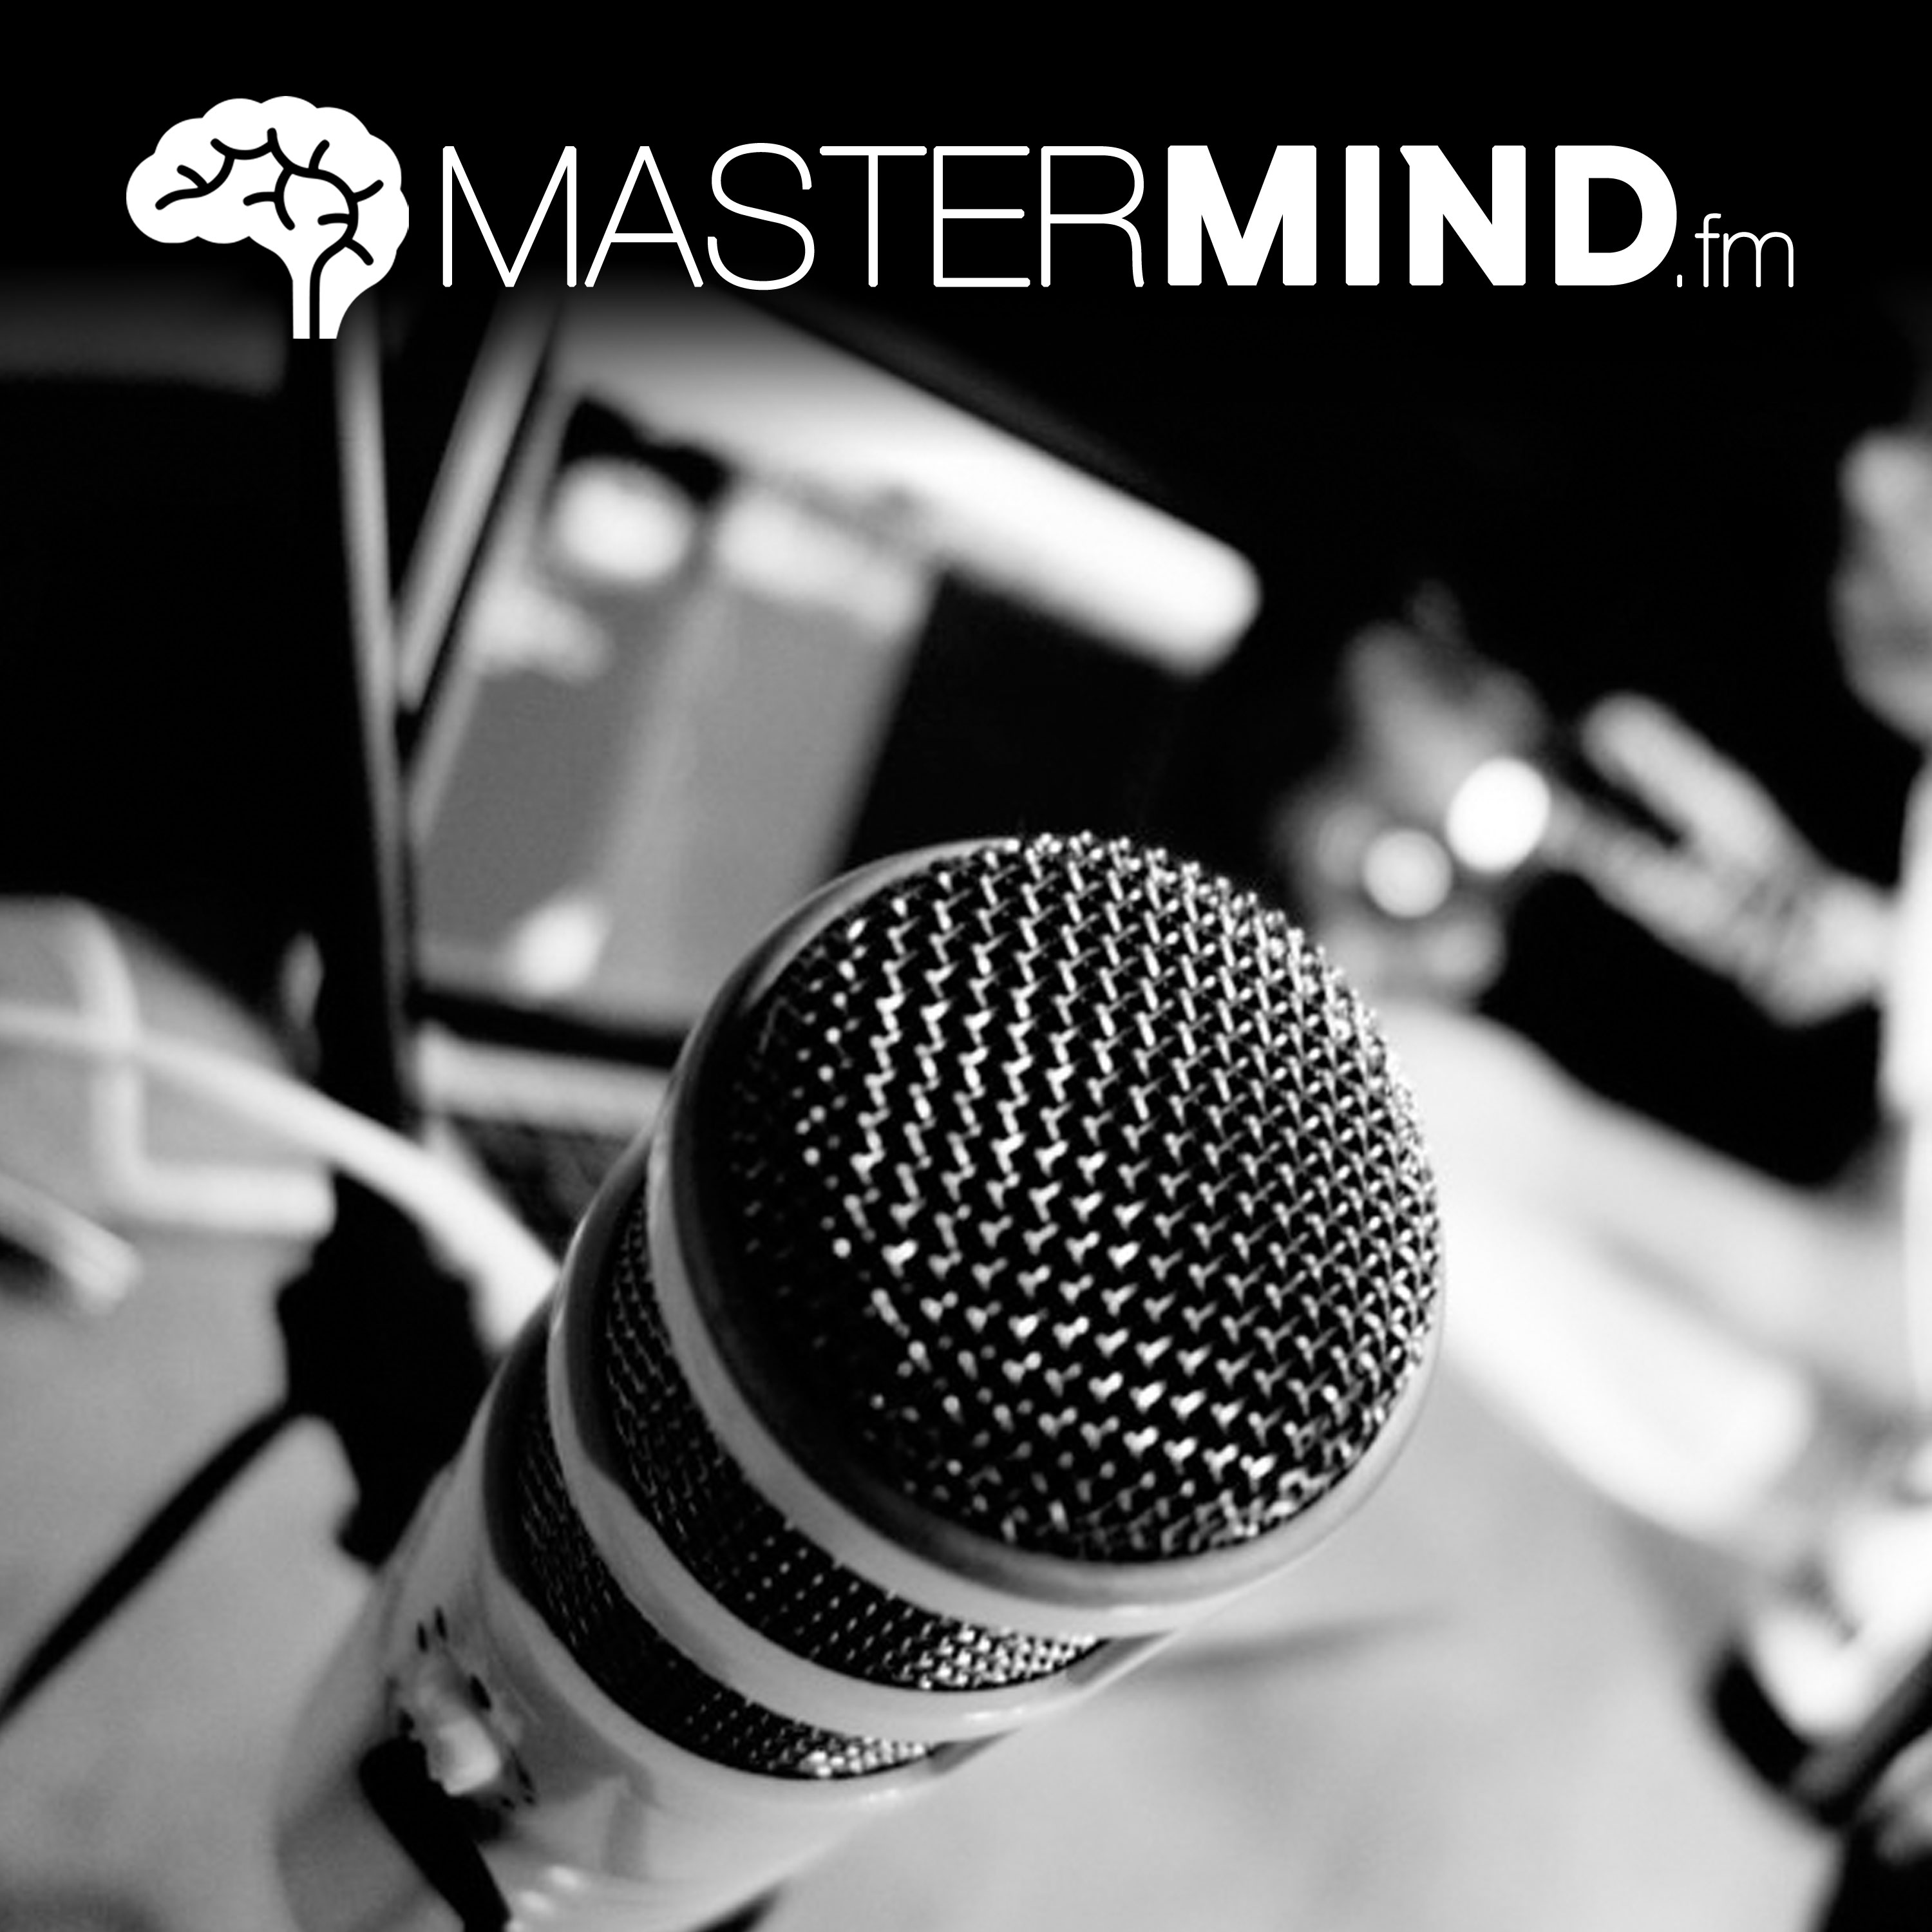 HQ Mastermind Wallpapers | File 493.32Kb